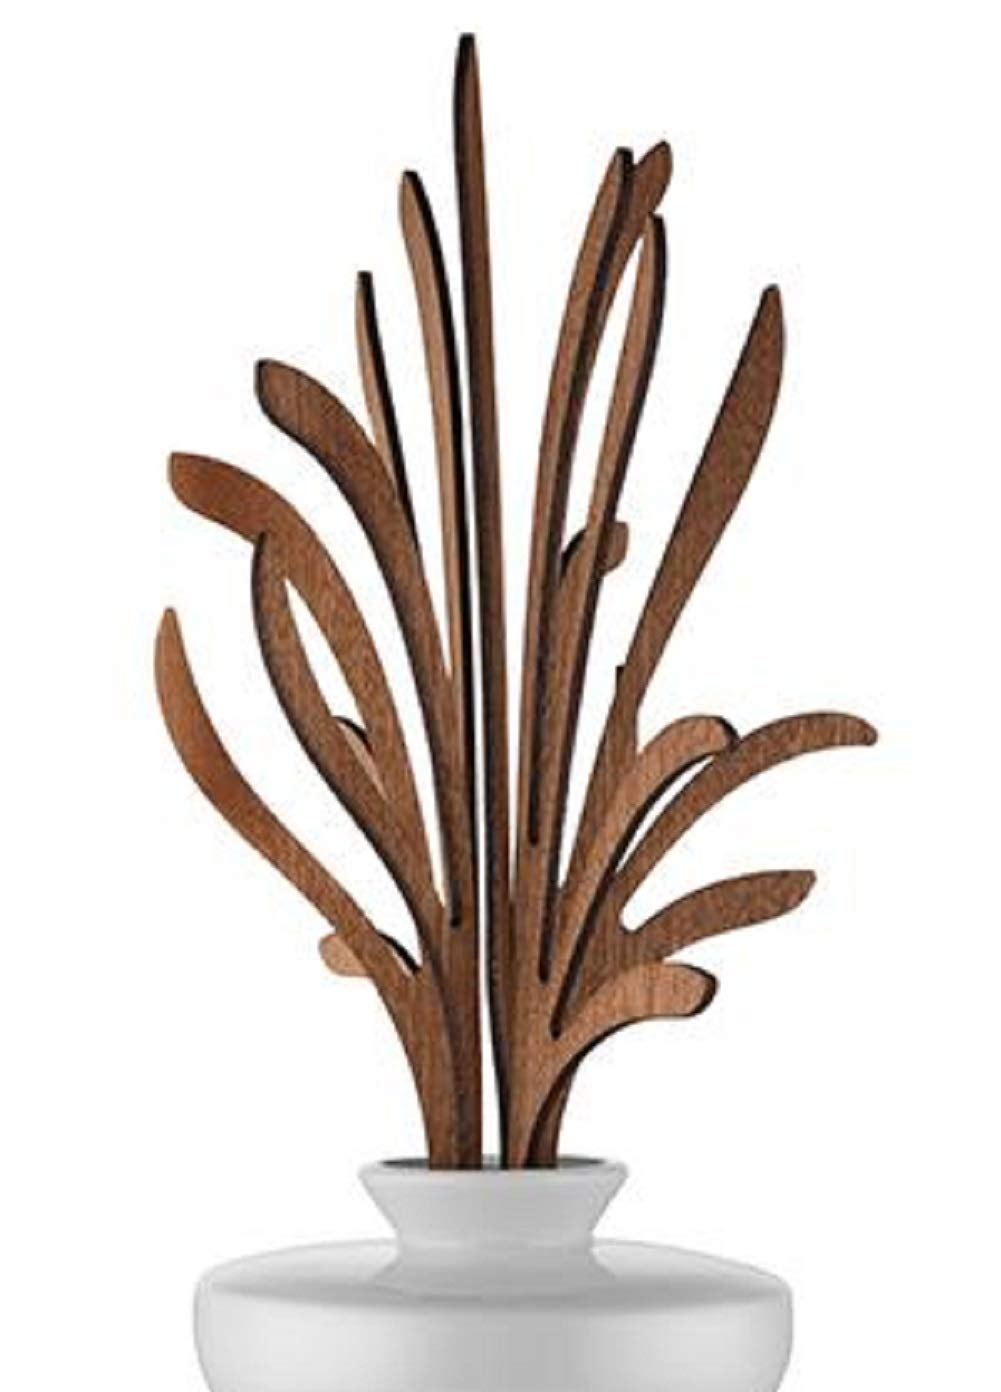 Alessi The Five Seasons Grrr Replacement Diffuser Leaves, Mahogany Wood, by Marcel Wanders